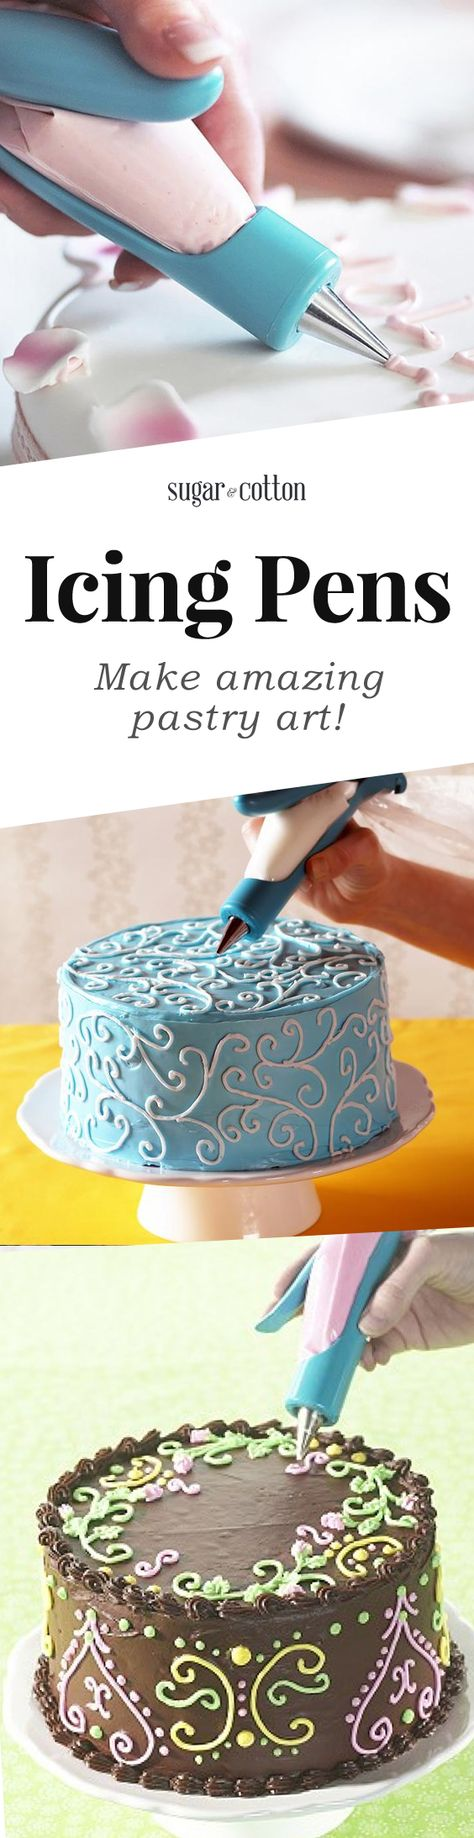 icing pens make gorgeous pastry art in seconds 5 5 2